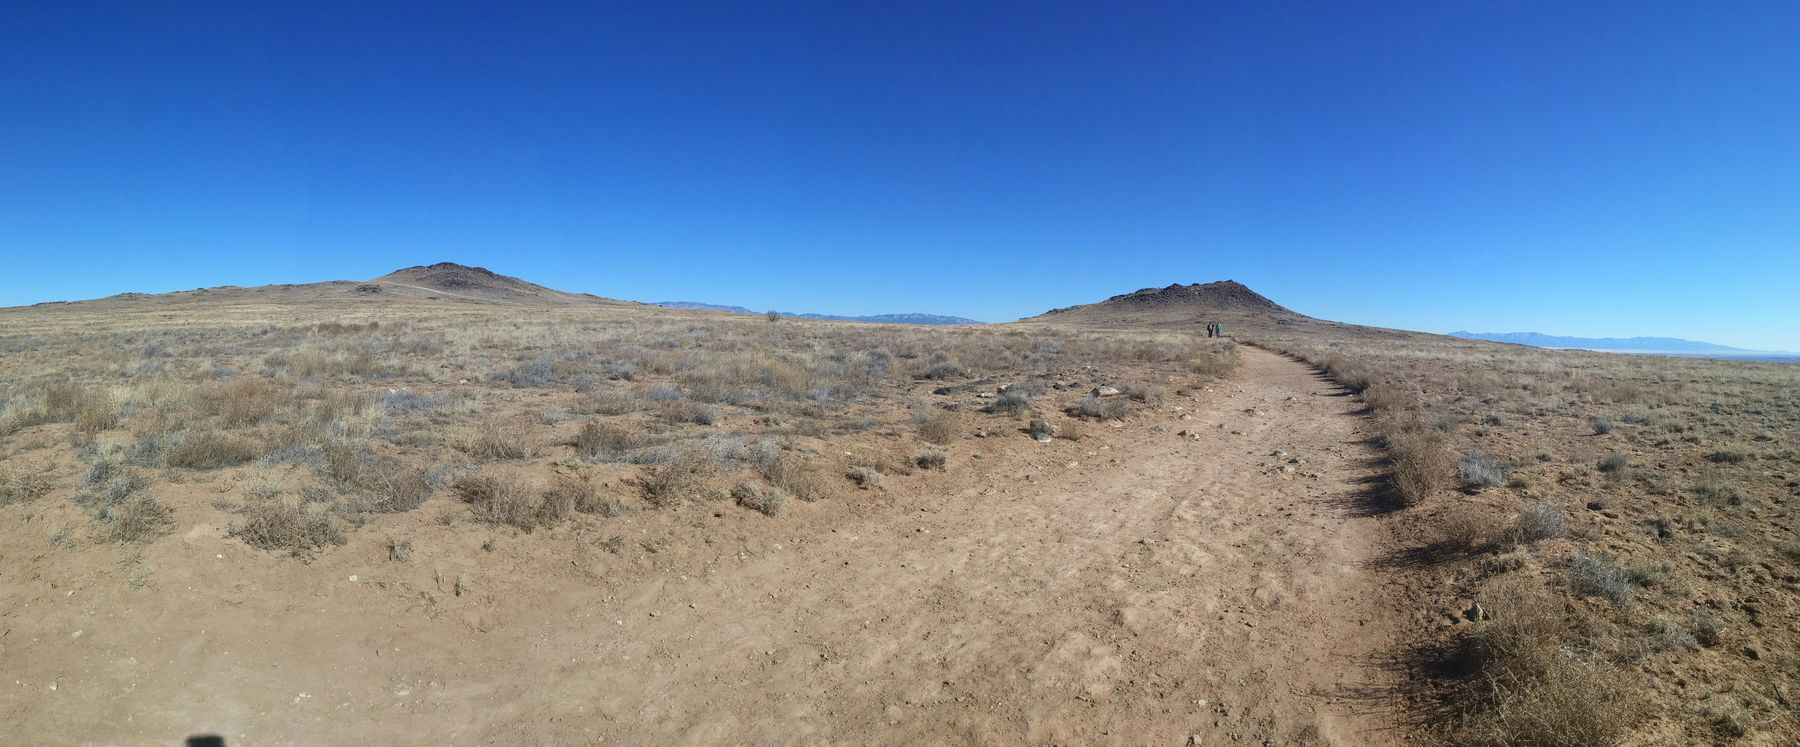 Volcanos on the Mesa. God has blessed us with an amazing Feb day! On A Hike Walking Nature PraiseGod